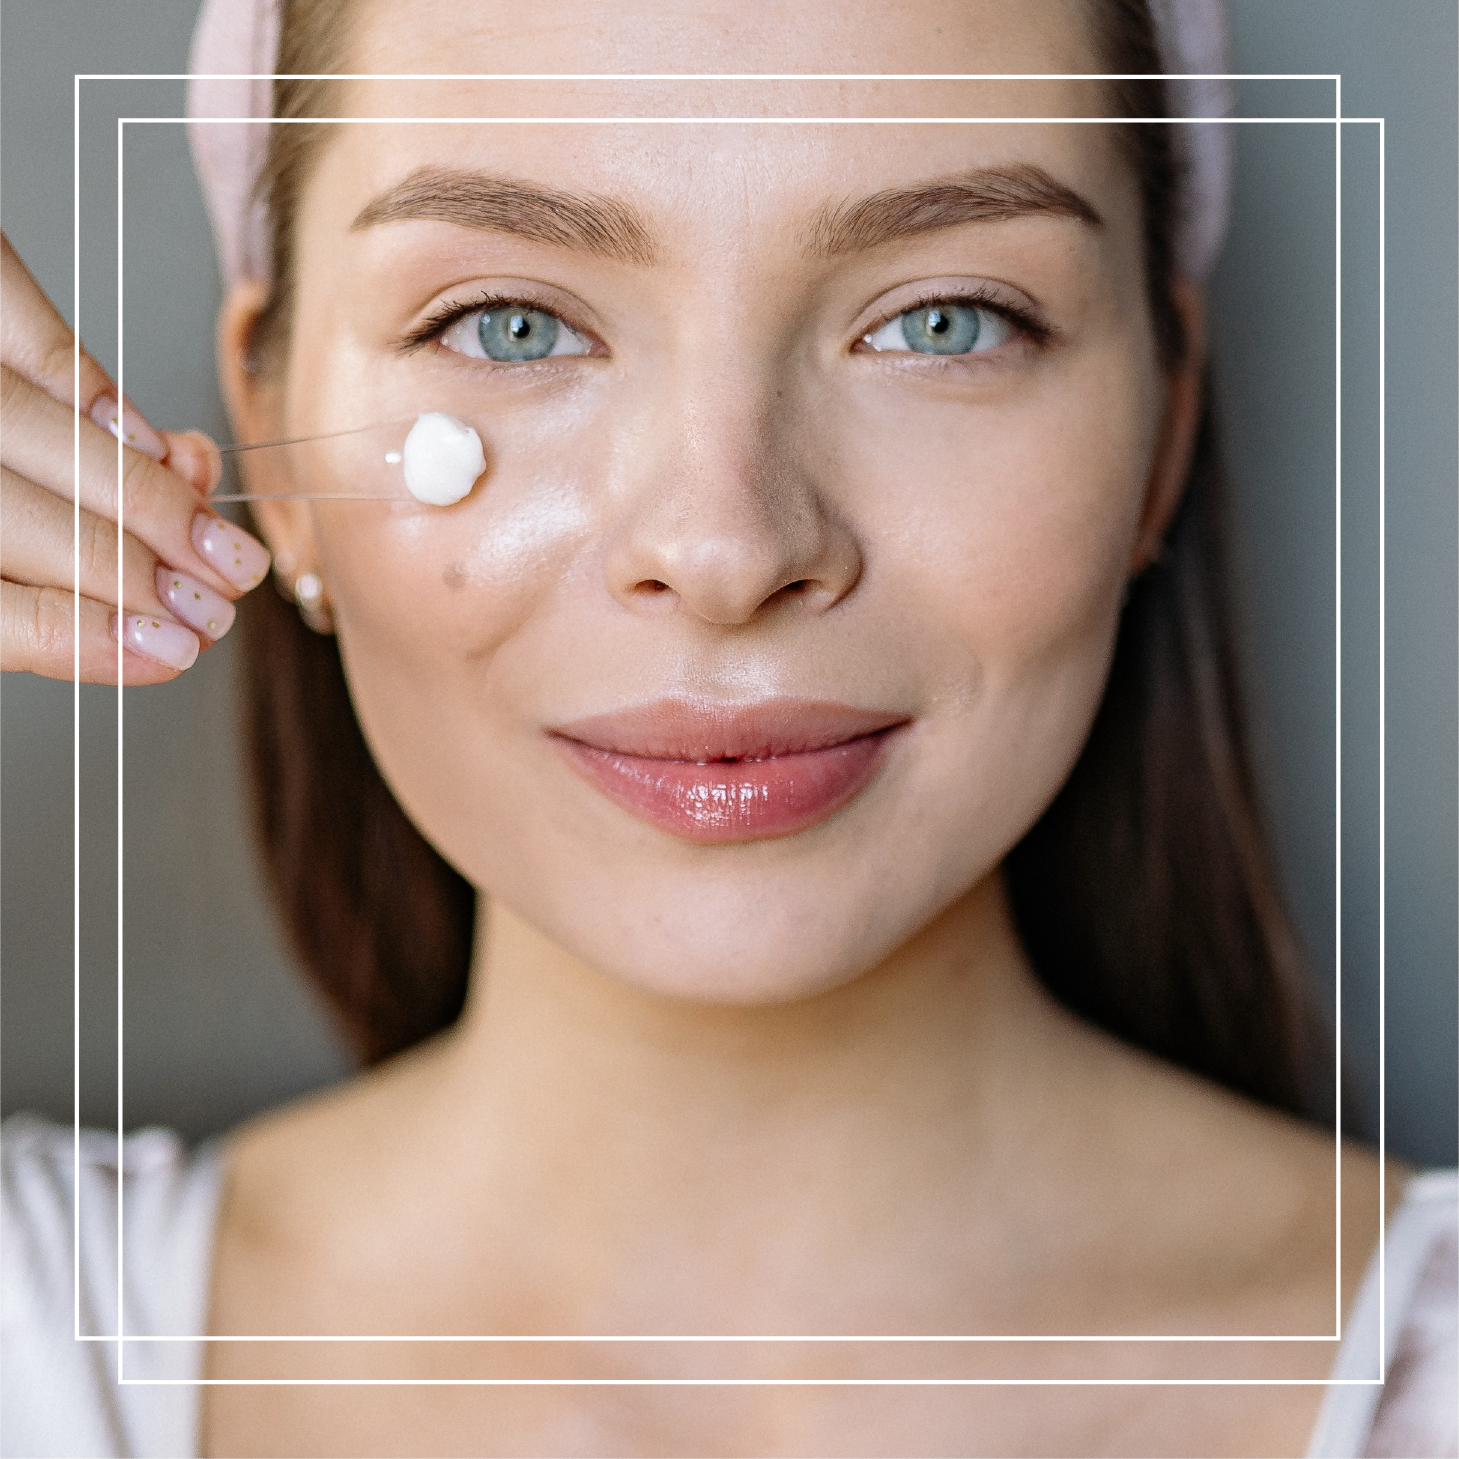 We're Letting You In On the Winter Combo Your Skin Needs: Moisturizer + SPF